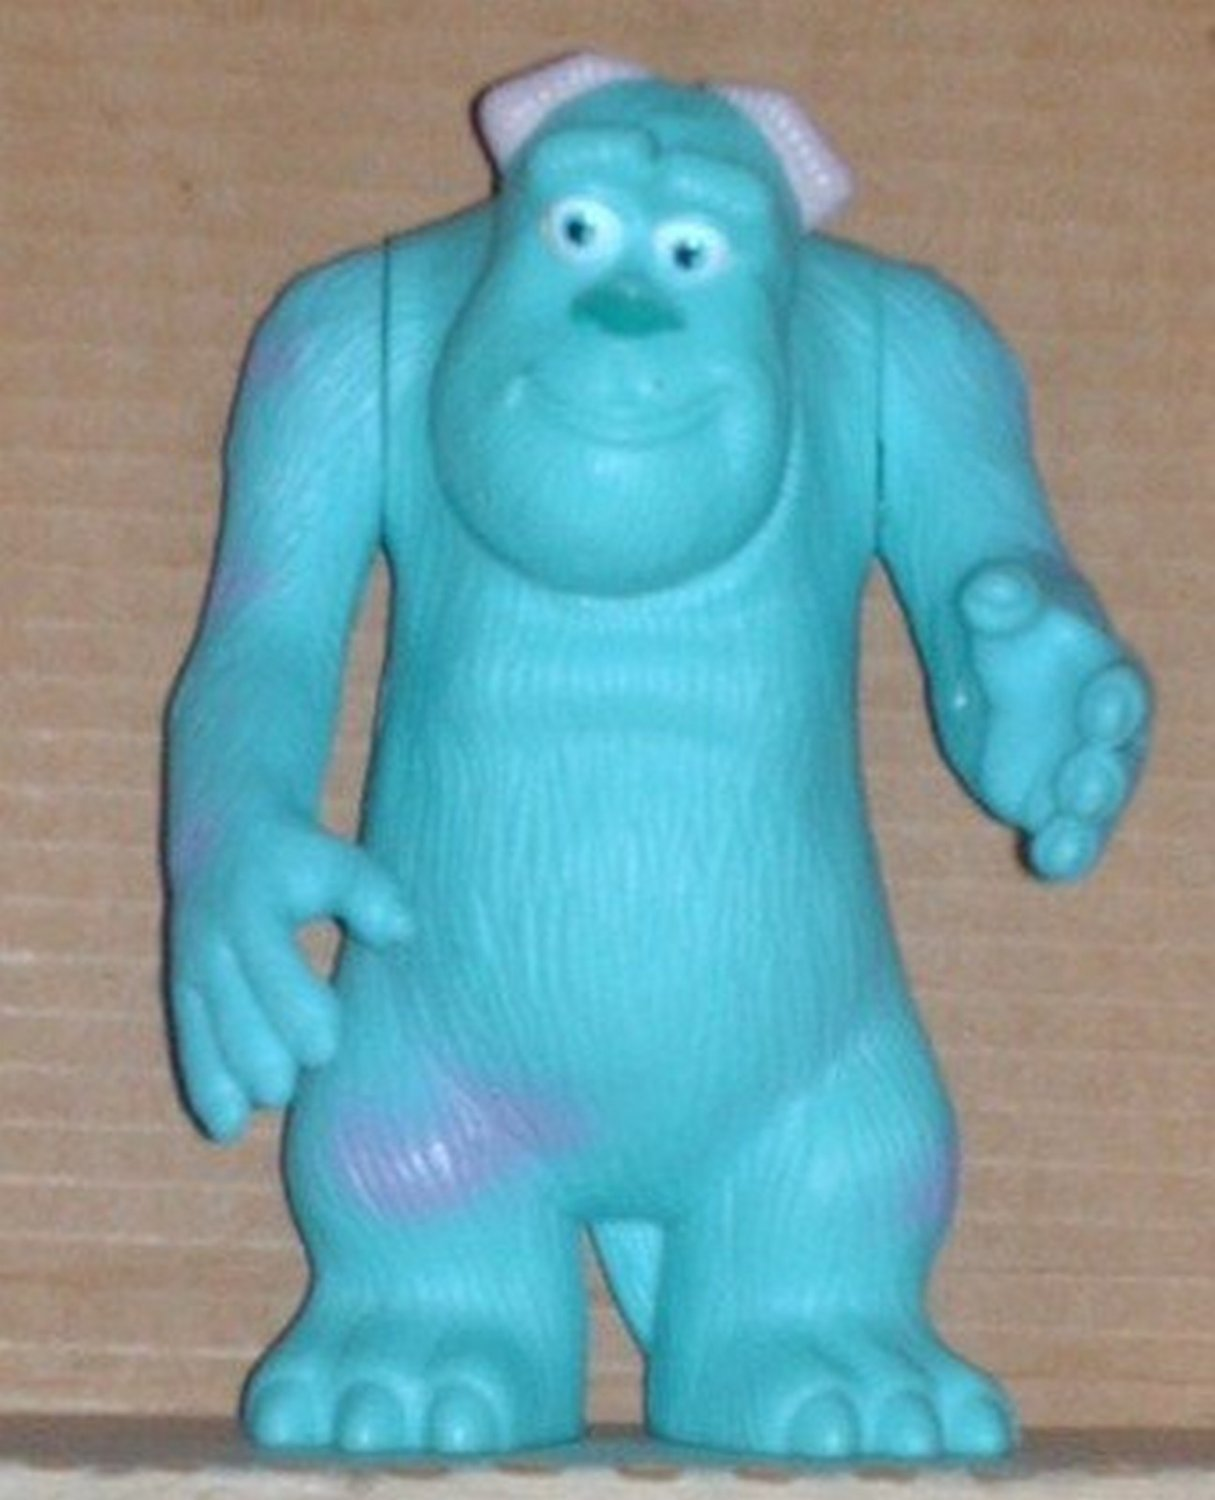 McDonald's 2005 Pixar Pals Monsters Inc Sulley Figure Happy Meal Toy Disney Loose Used